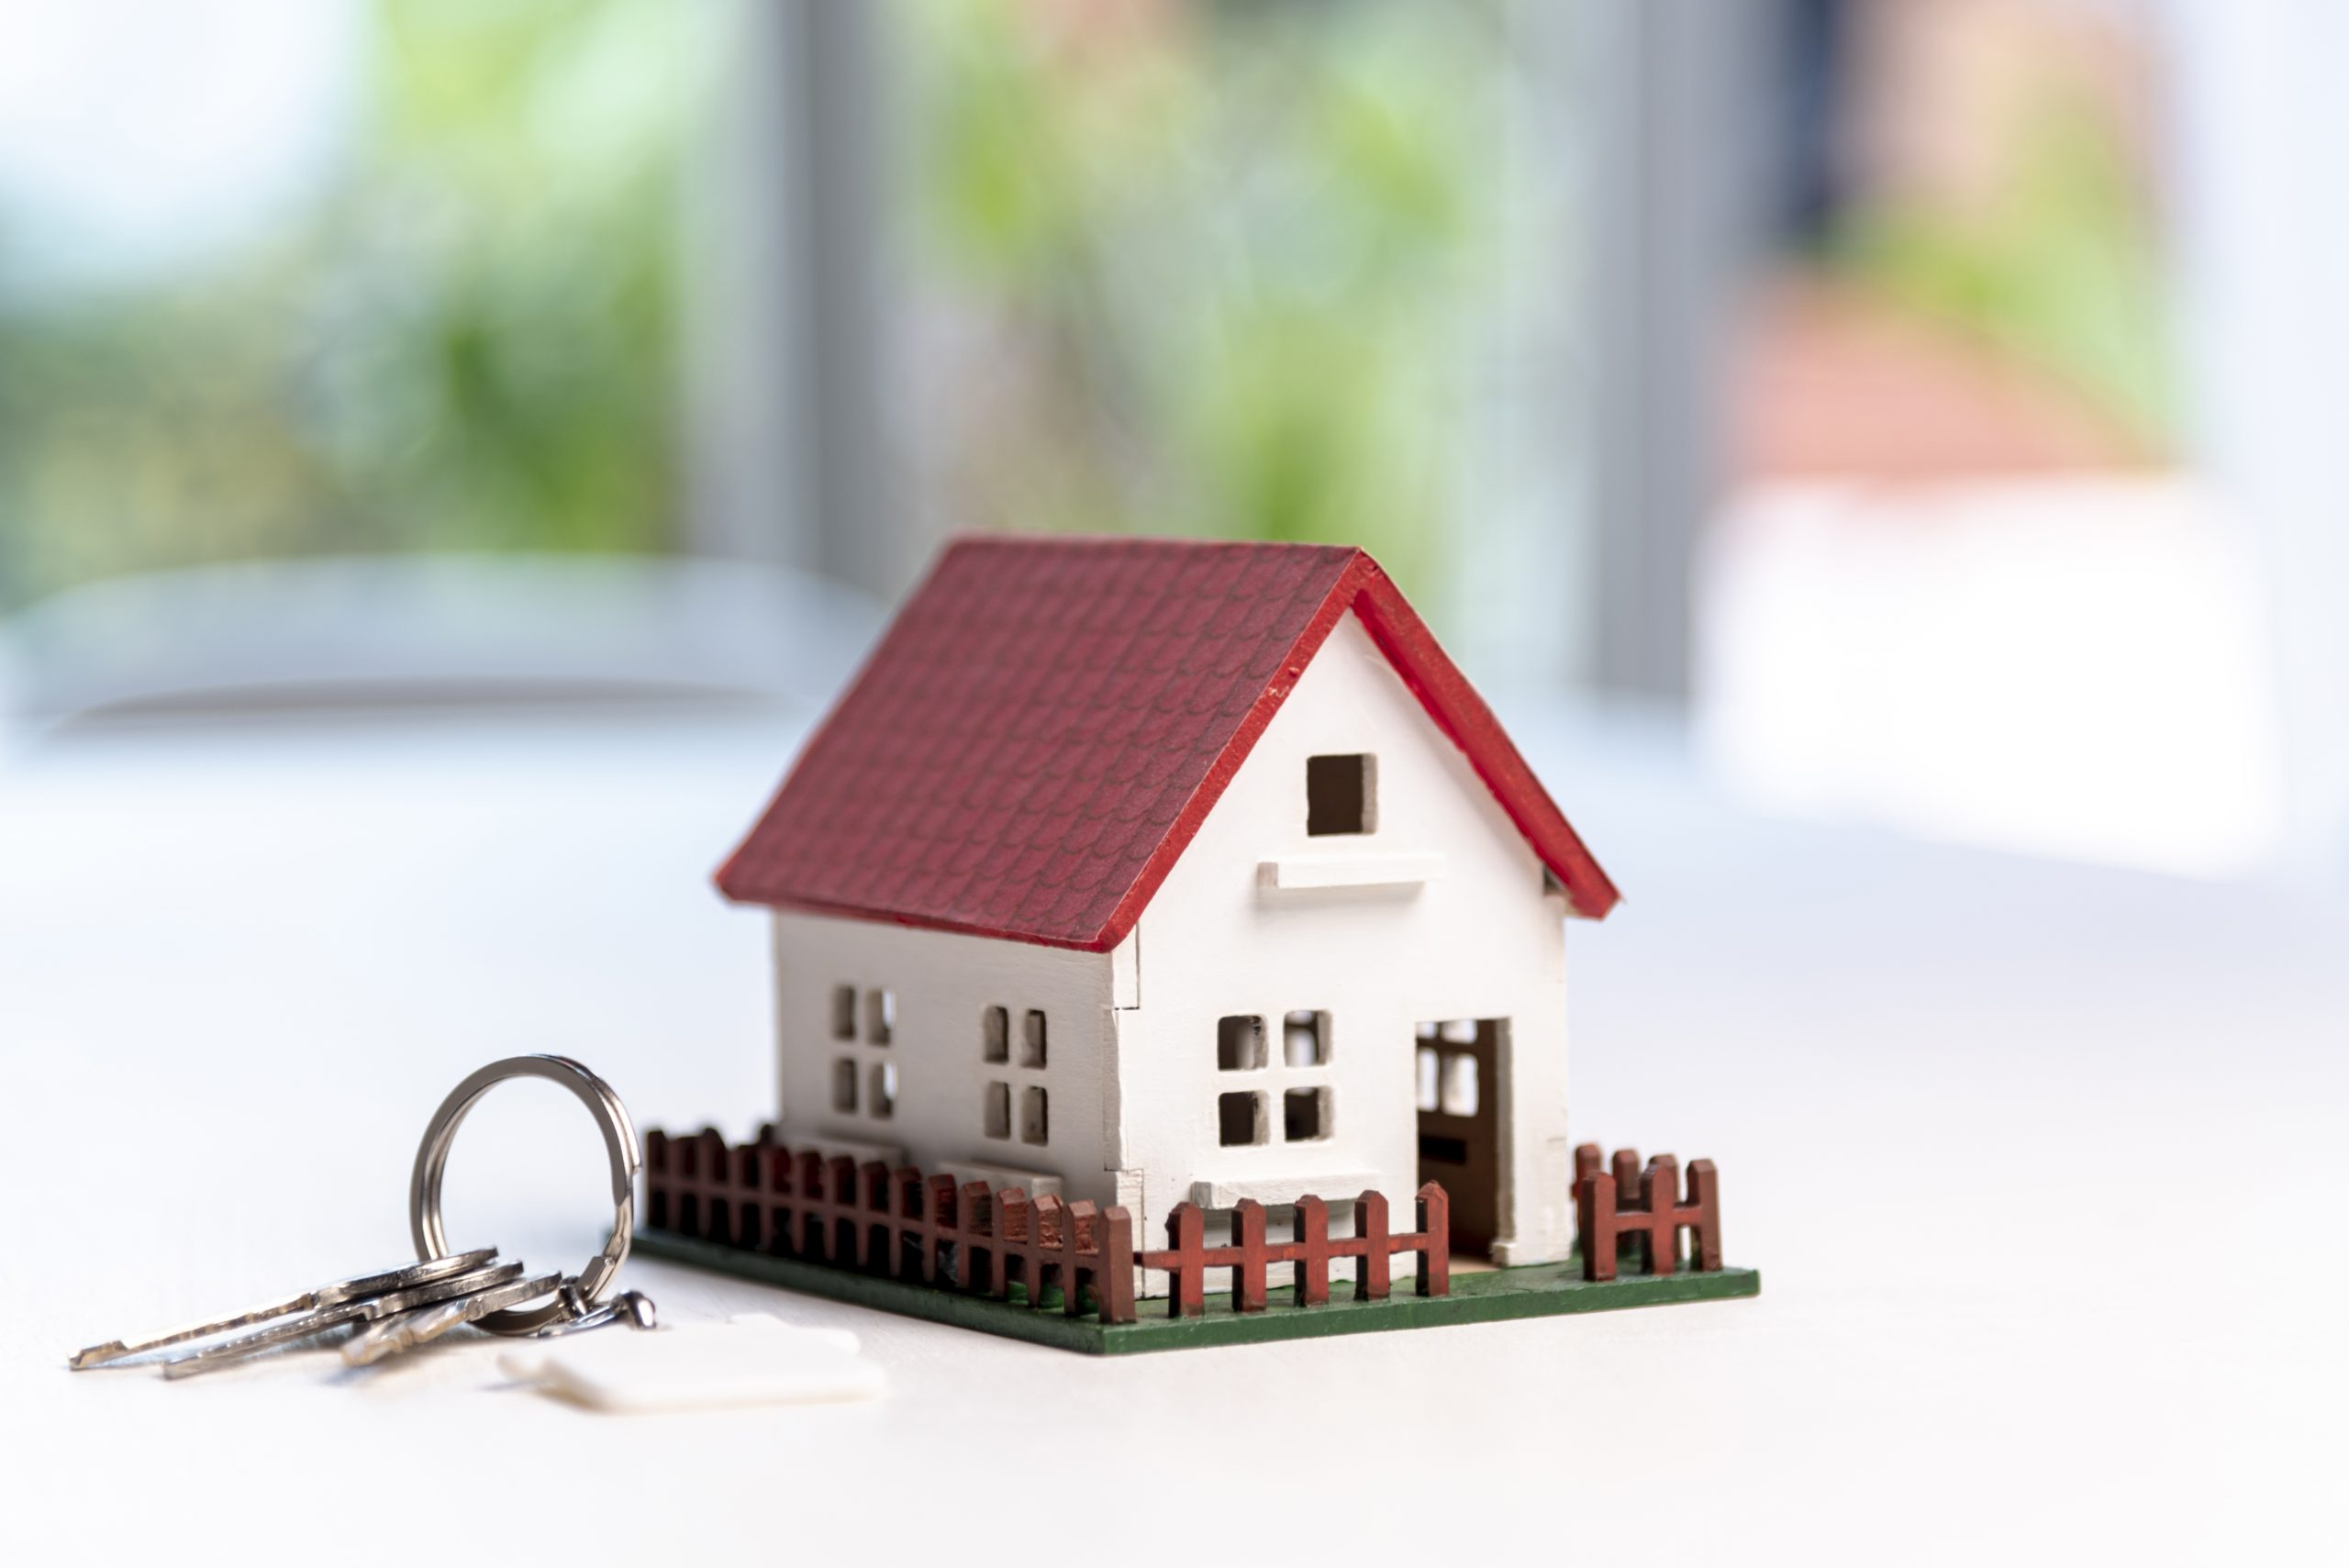 Model house and keys beside it